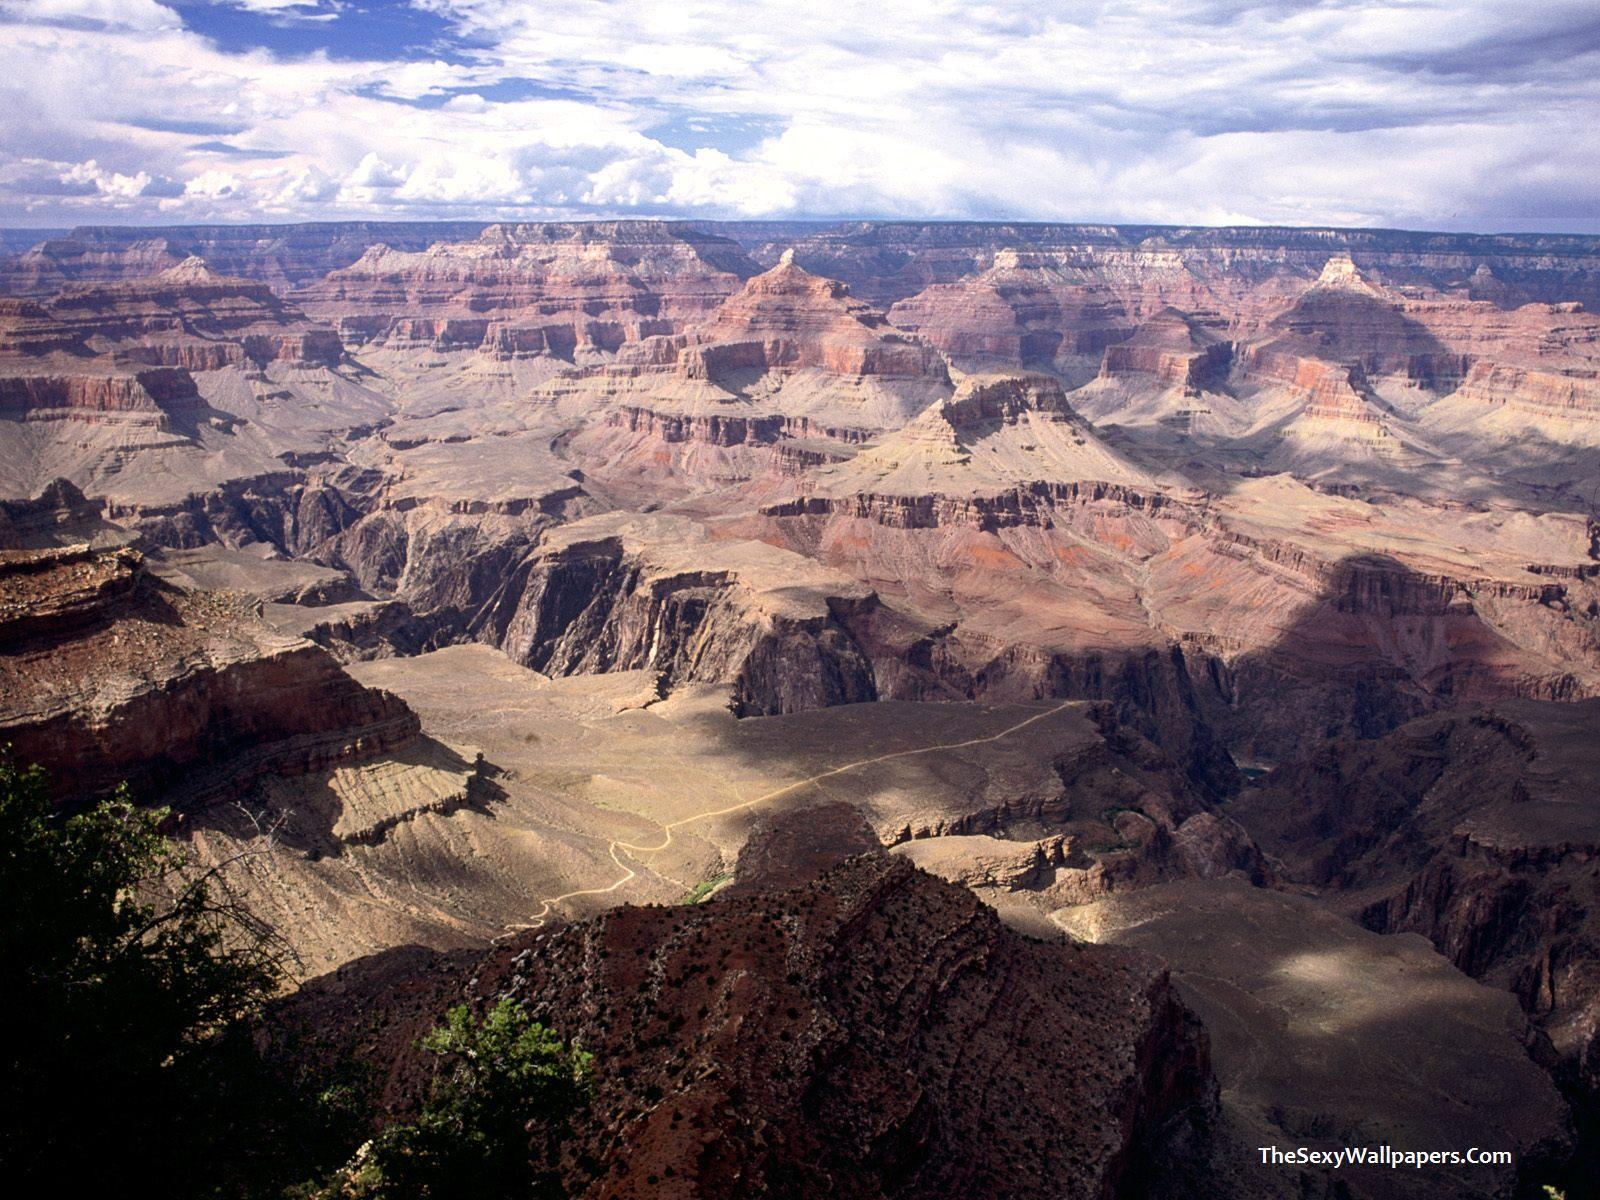 Grand Canyon Arizona Wallpaper - The Sexy Wallpapers